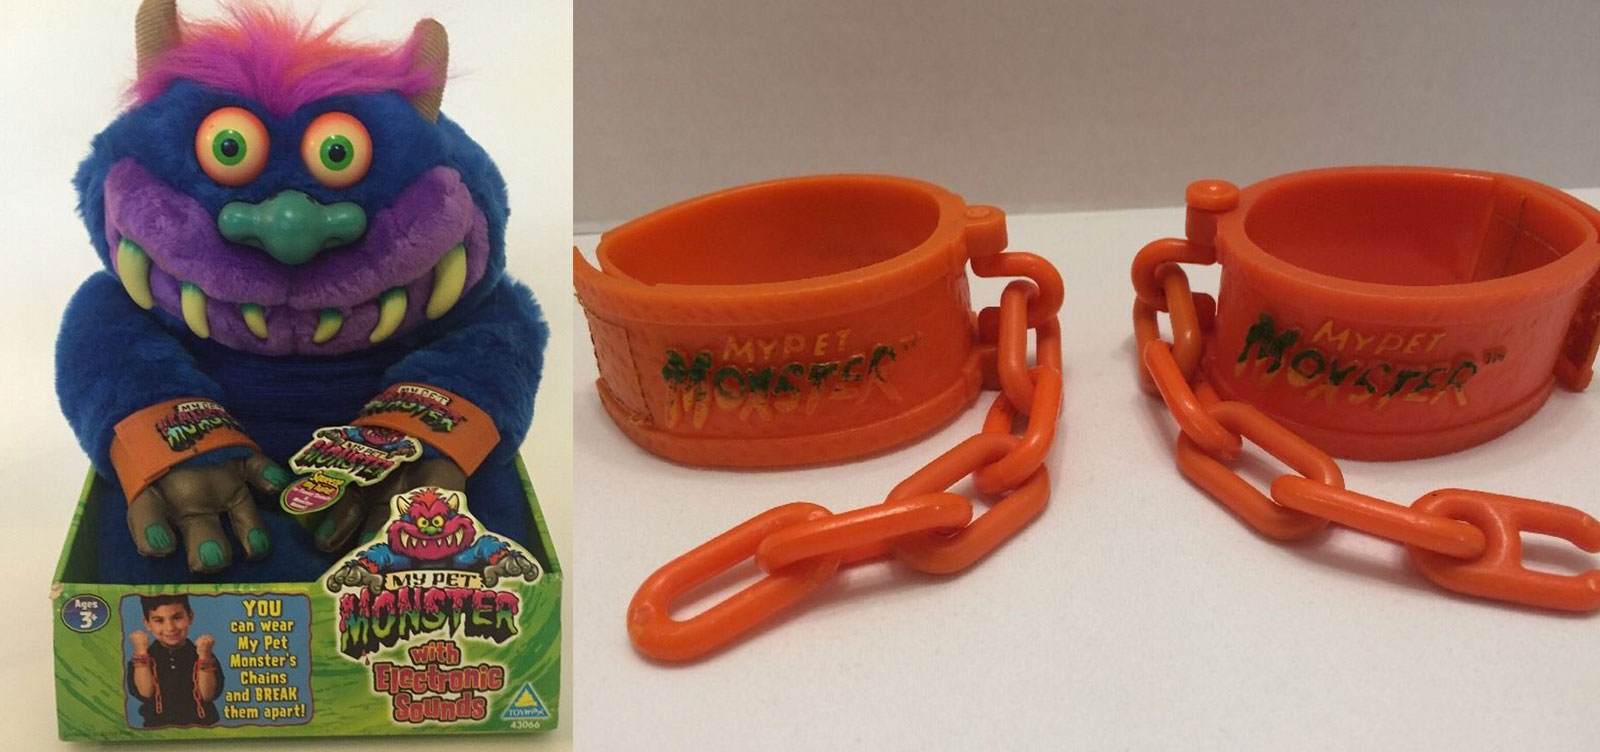 My Pet Monster - 2001 Edition and Old Cuffs